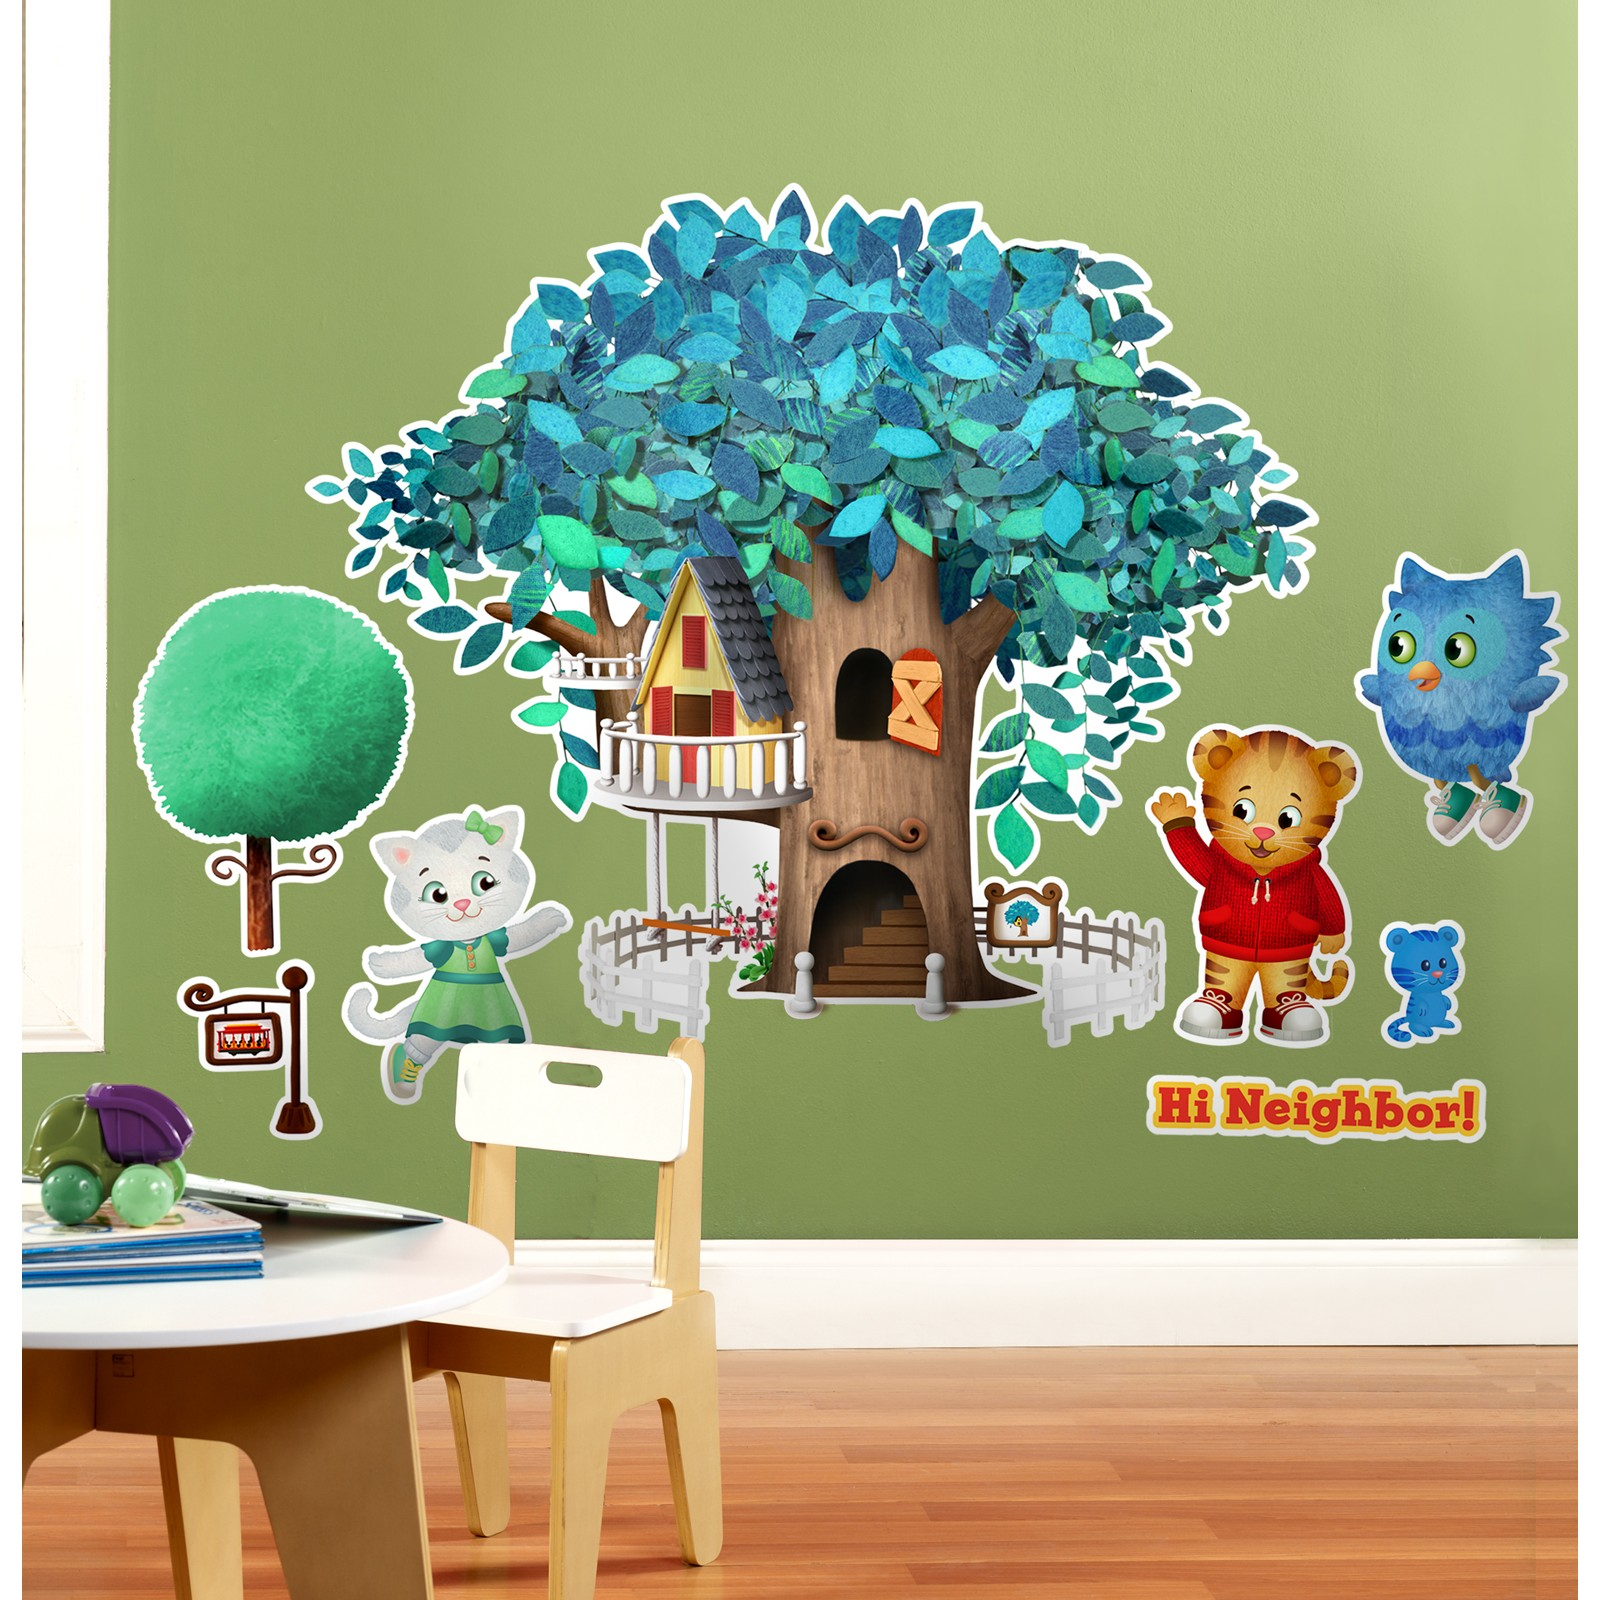 Daniel Tiger's Neighborhood Giant Wall Decals